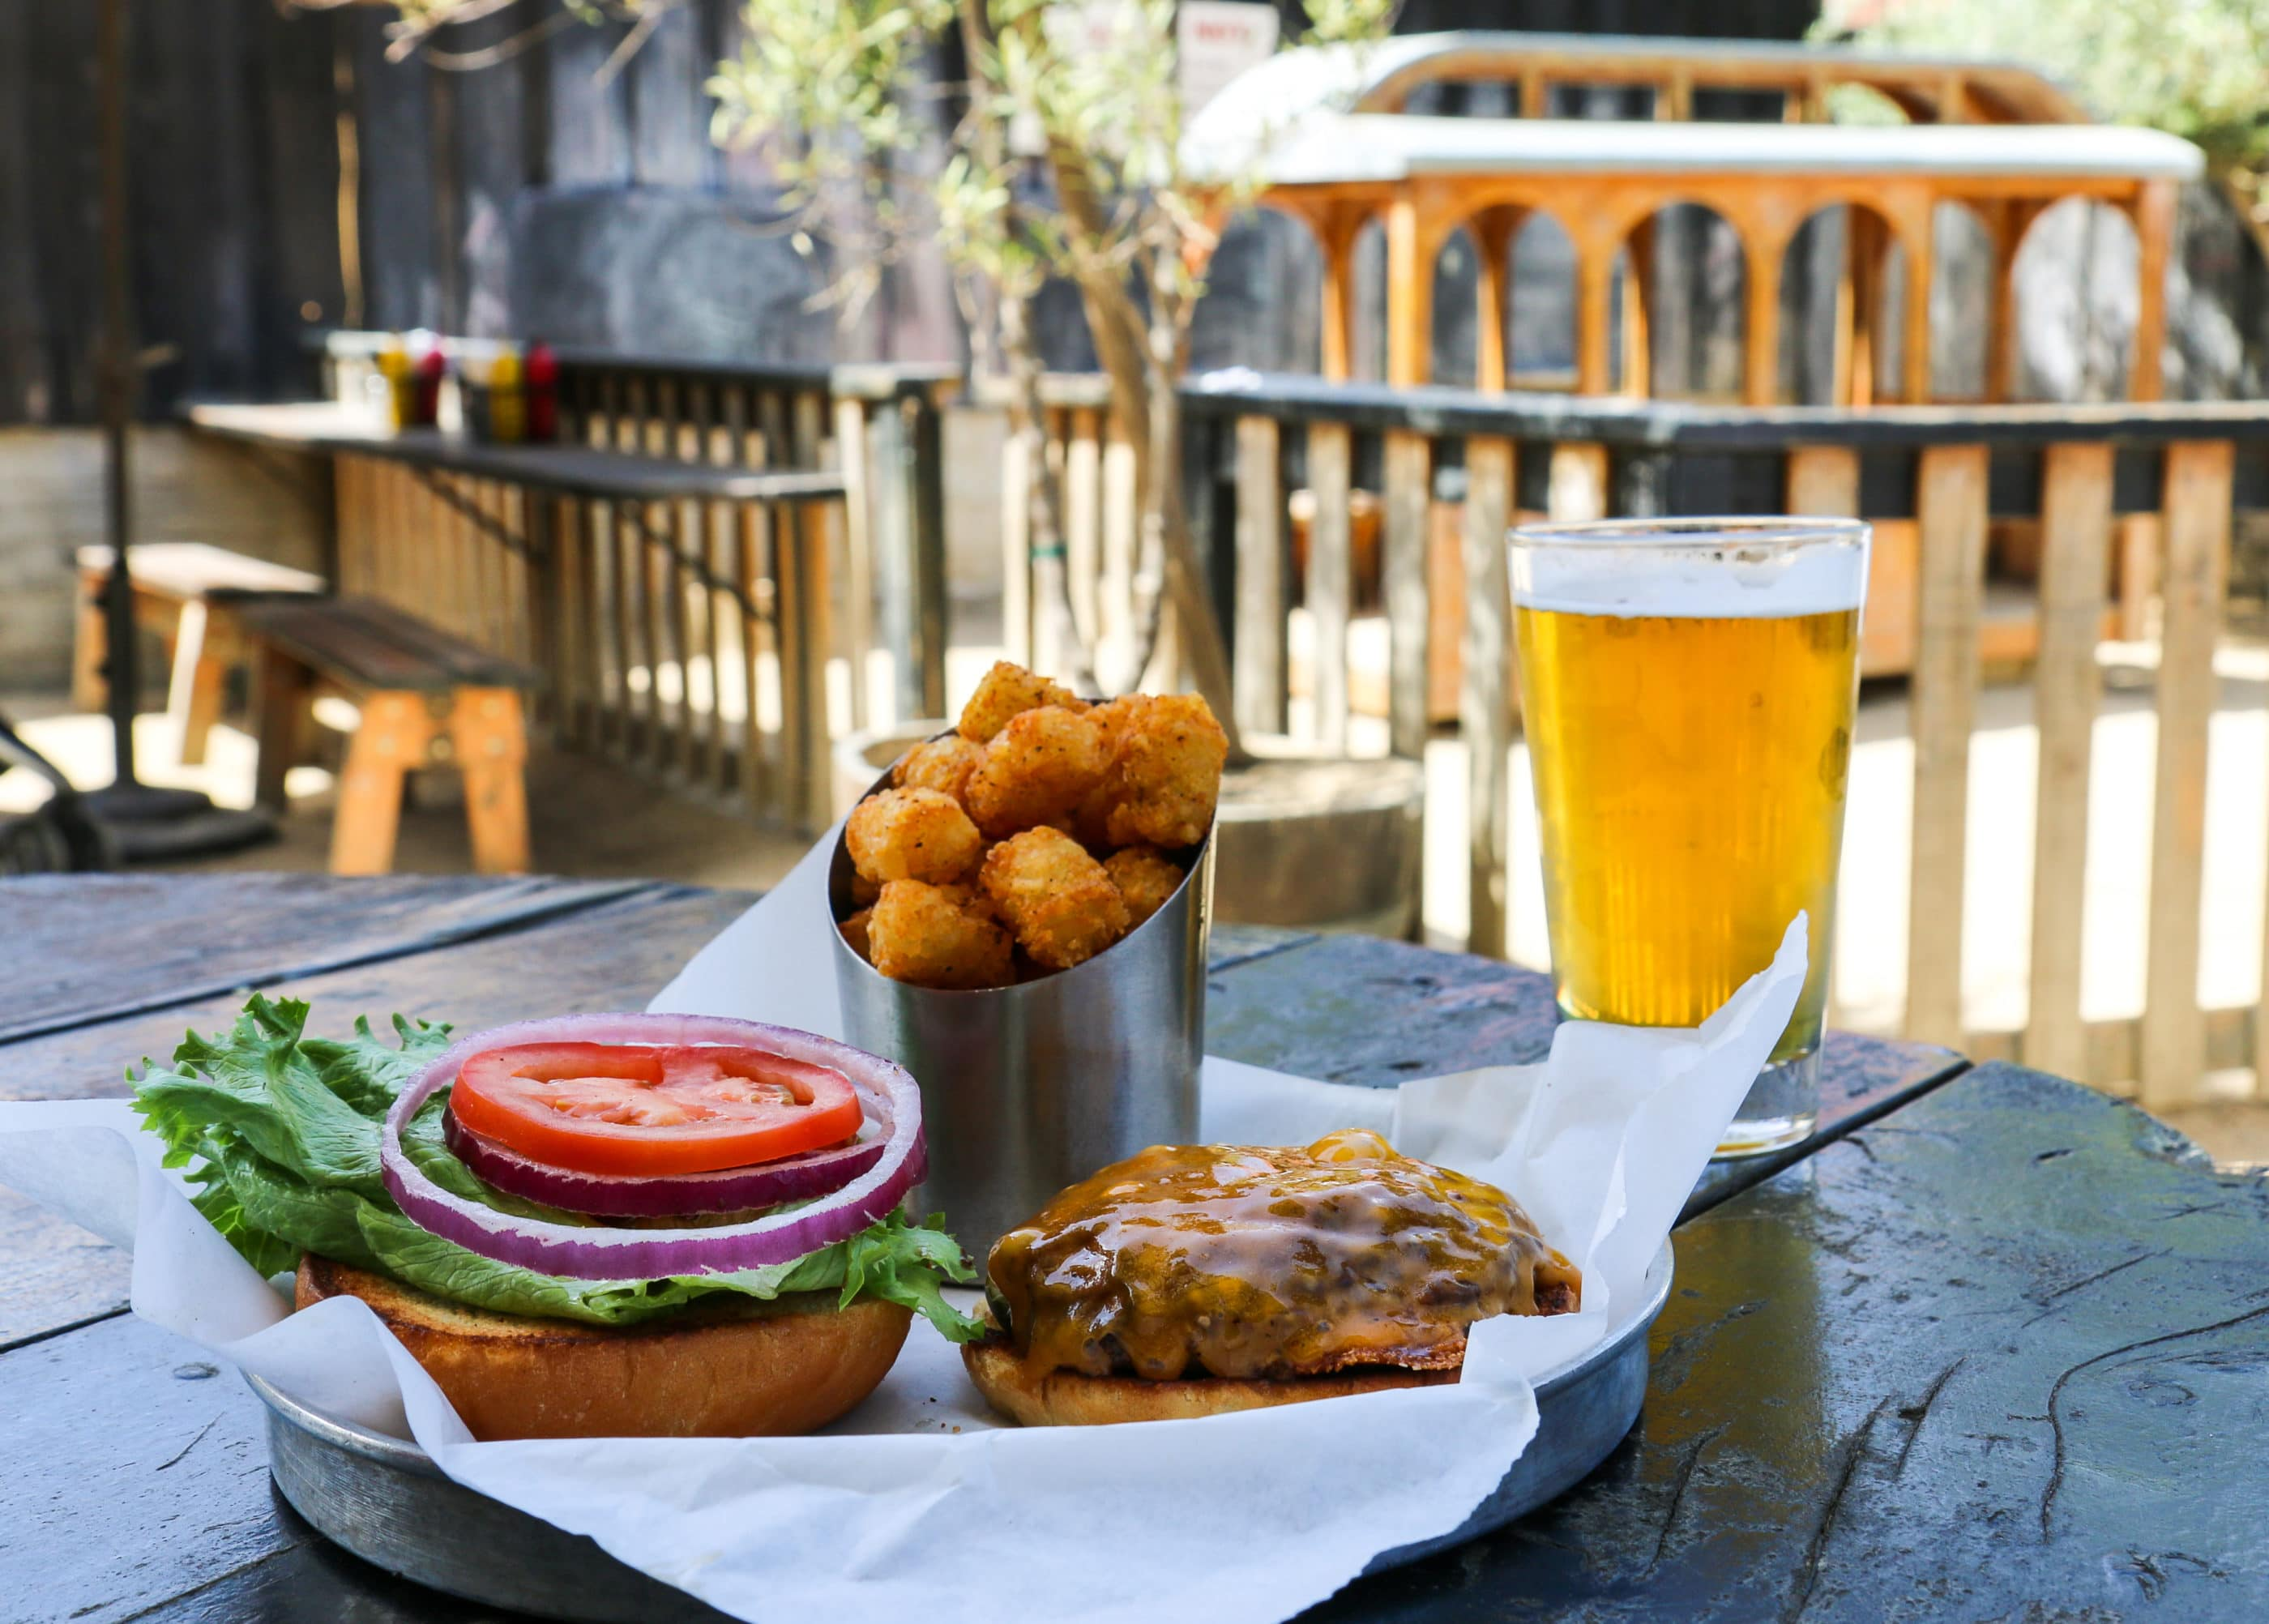 A burger, tater tots, and pint of local beer on a picnic table with the gated play area in the background at Station Tavern, a kid-friendly restaurant in San Diego.